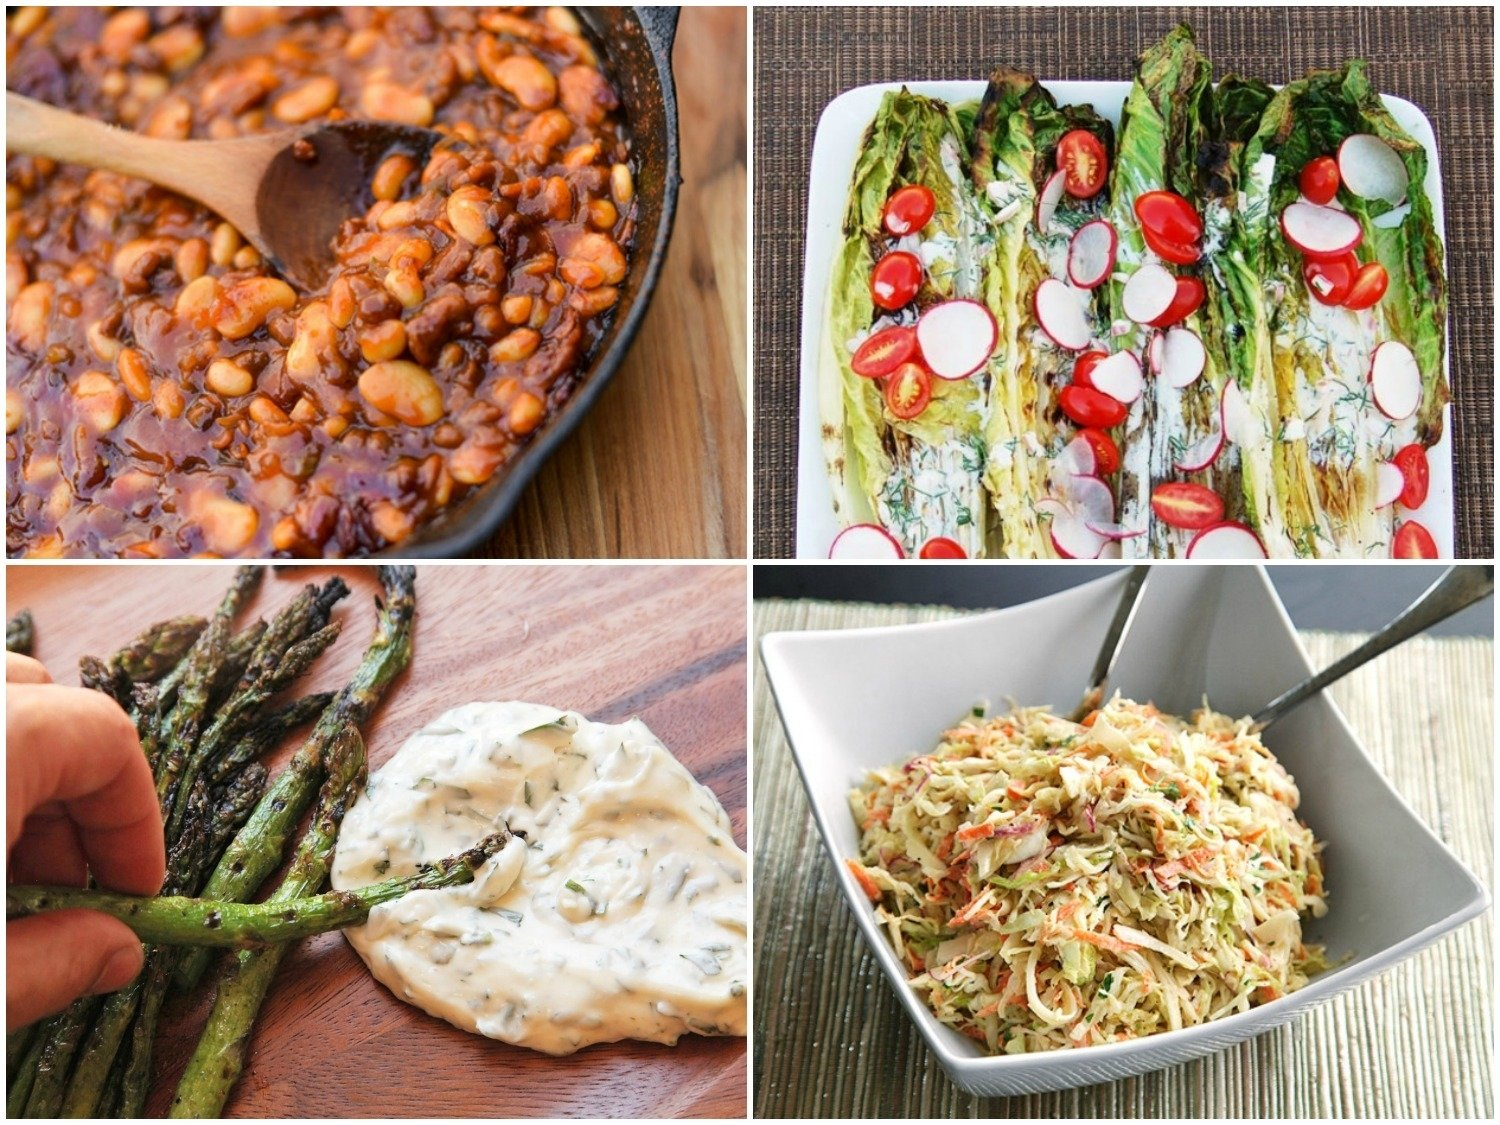 10 Lovely 4Th Of July Bbq Menu Ideas 18 sides and salads for your july 4th festivities serious eats 2020